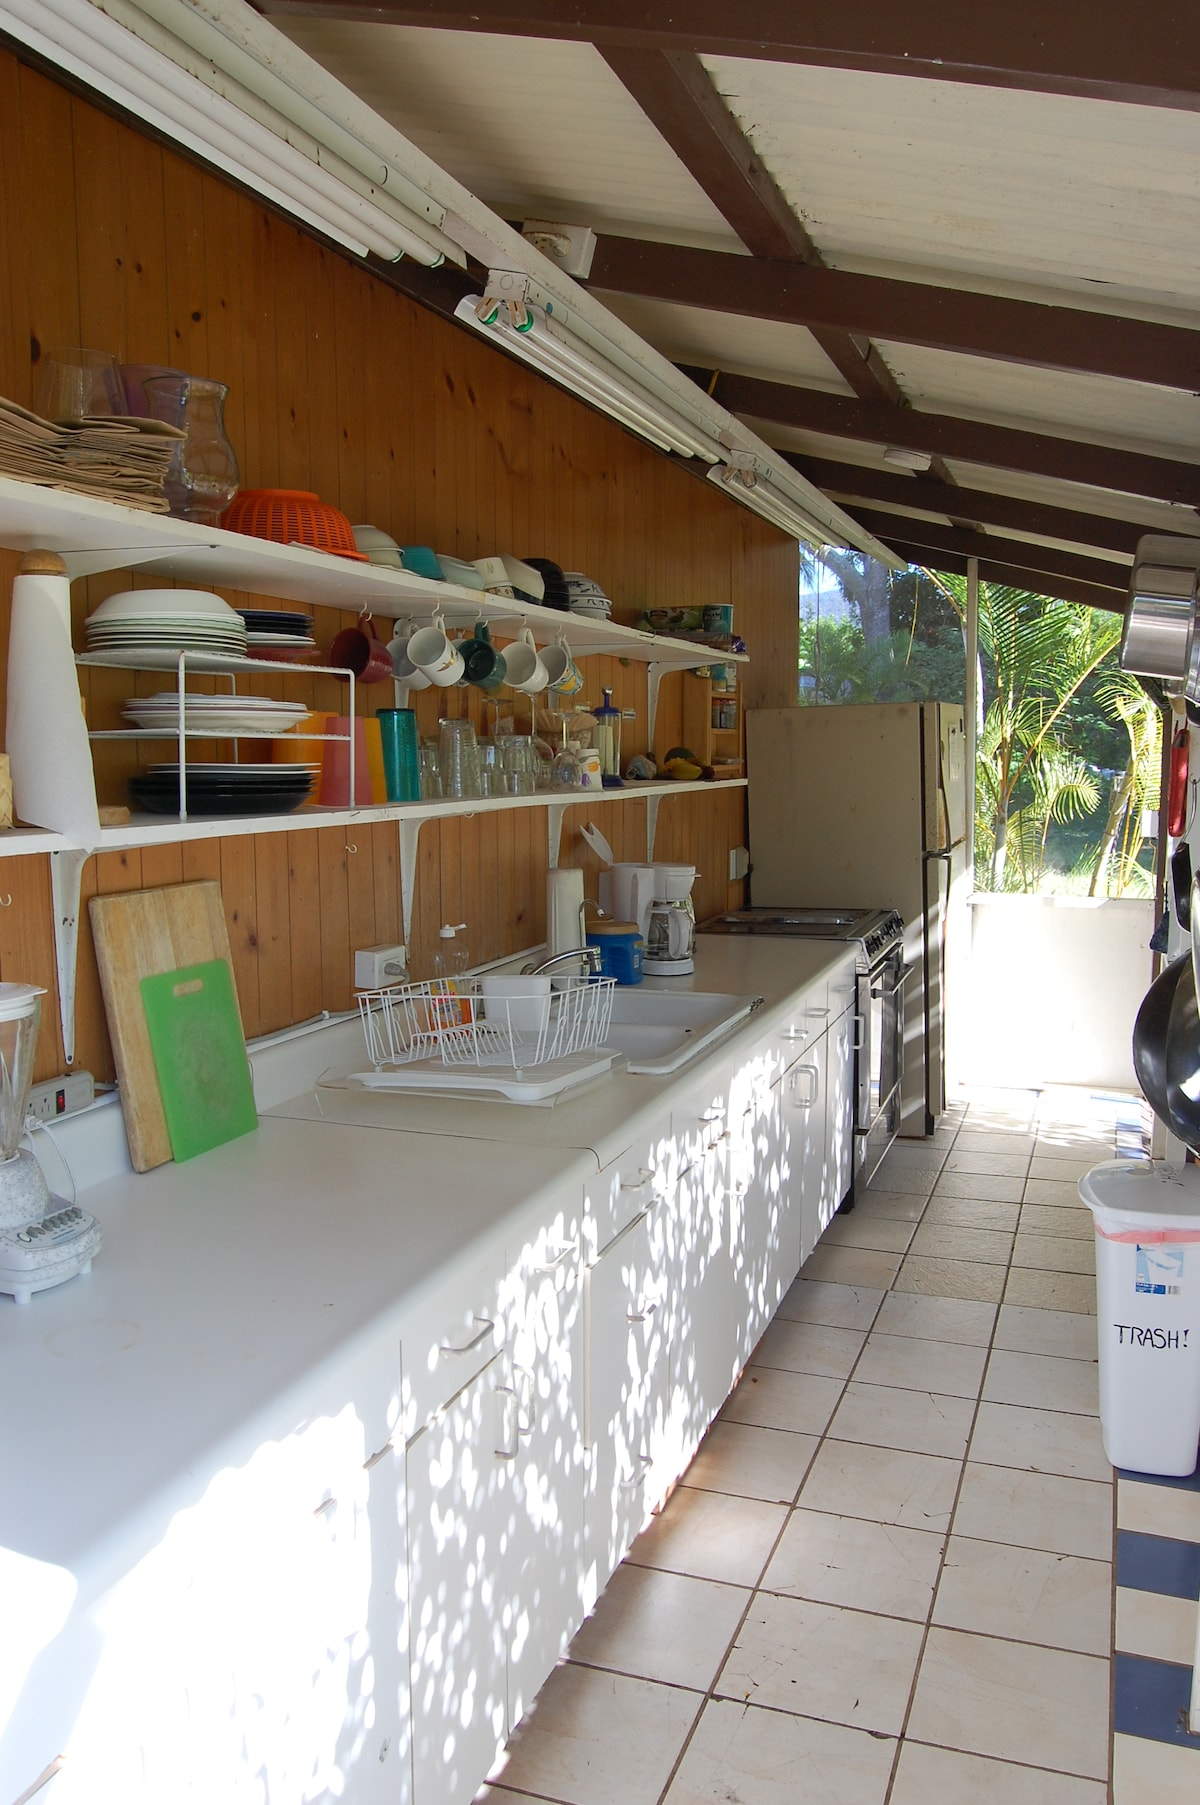 Fully stocked kitchen with all the essentials needed for your stay.